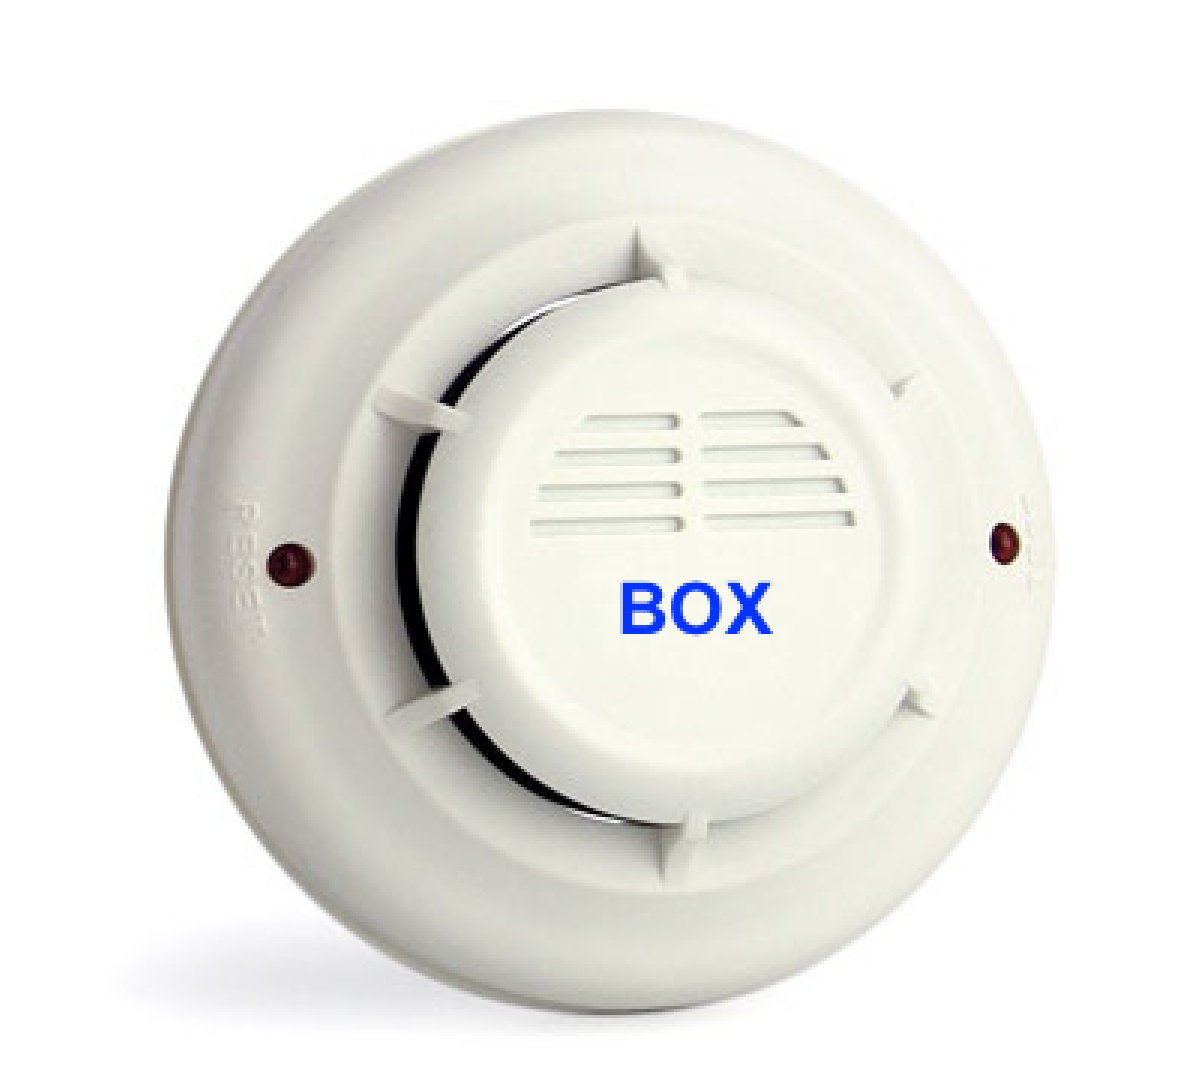 Gas Alarm detector from BOX Security